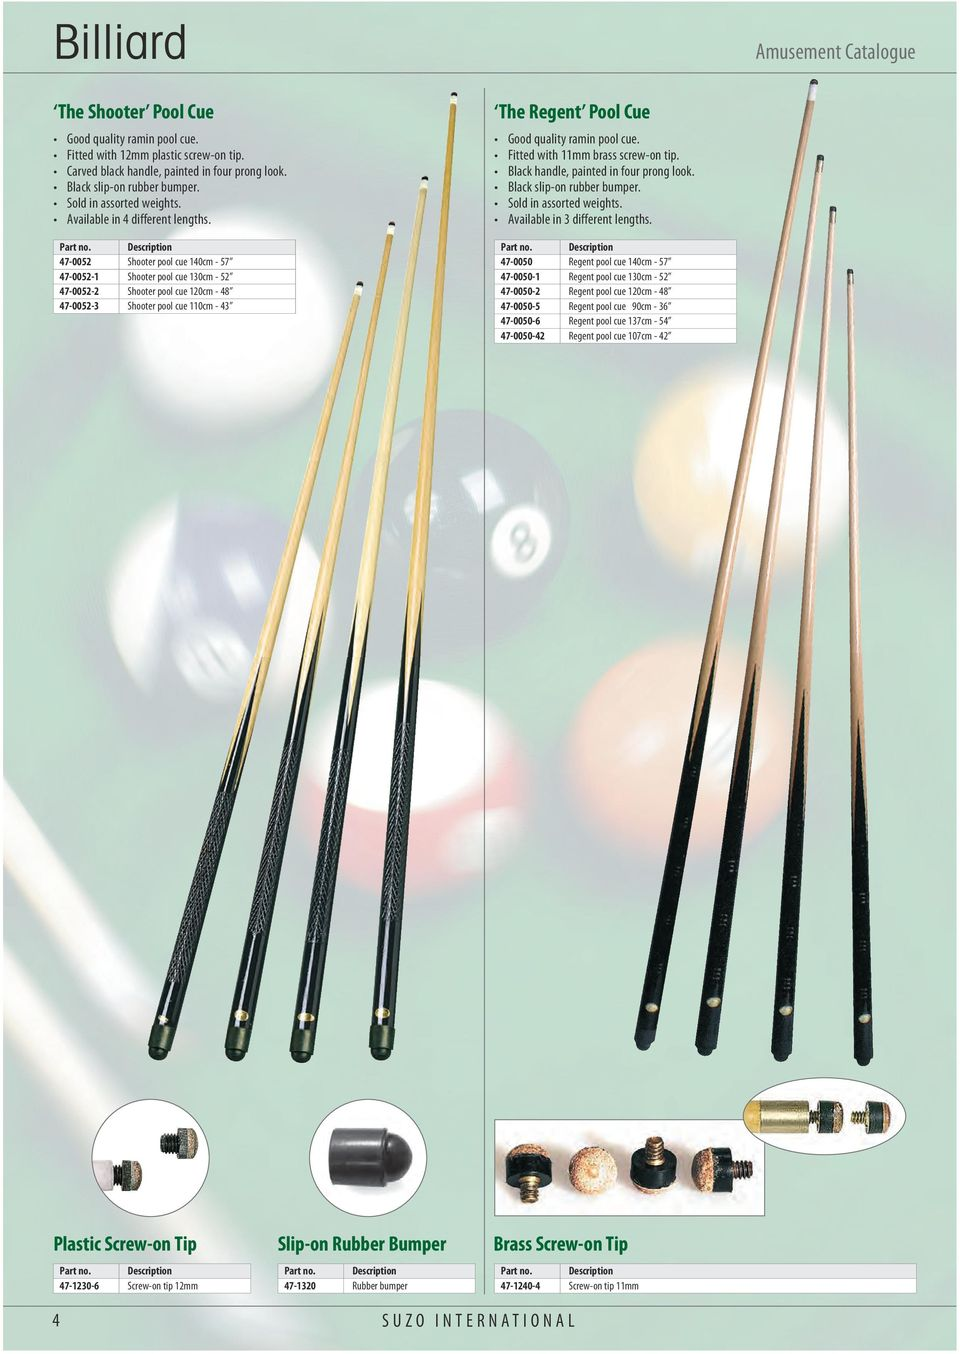 Aramith premier 2 50 8mm blue amp yellow pool ball set - 47 0052 Shooter Pool Cue 140cm 57 47 0052 1 Shooter Pool